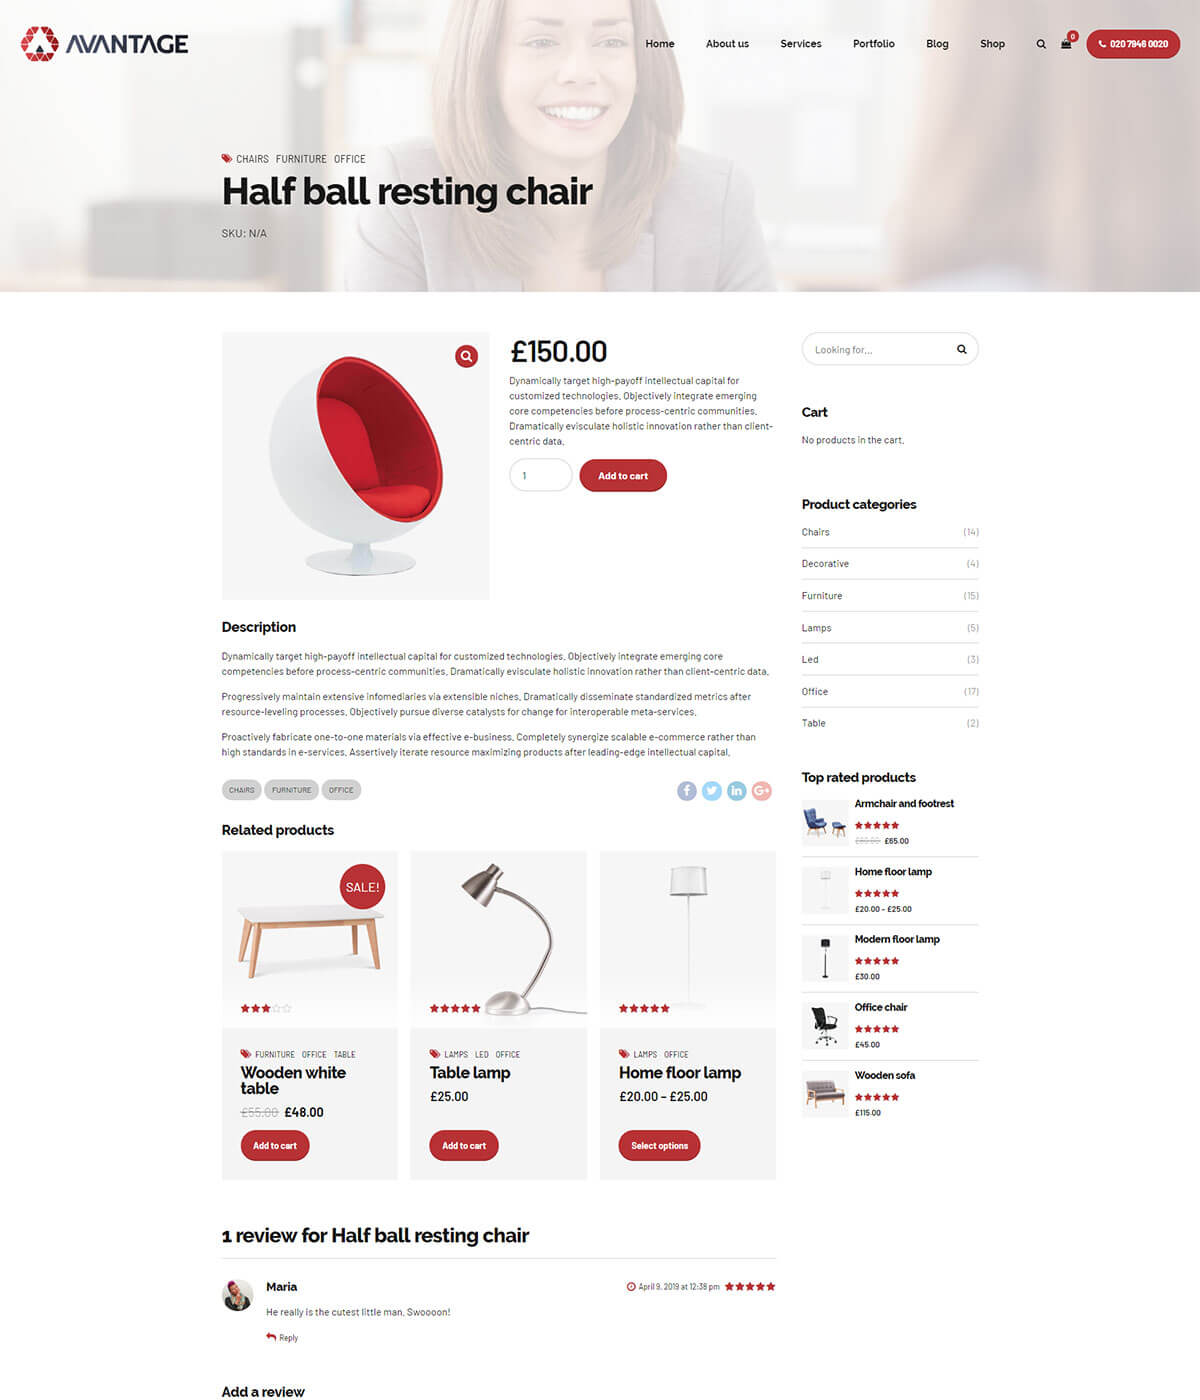 http://avantage.bold-themes.com/wp-content/uploads/2019/05/hr-15-product.jpg